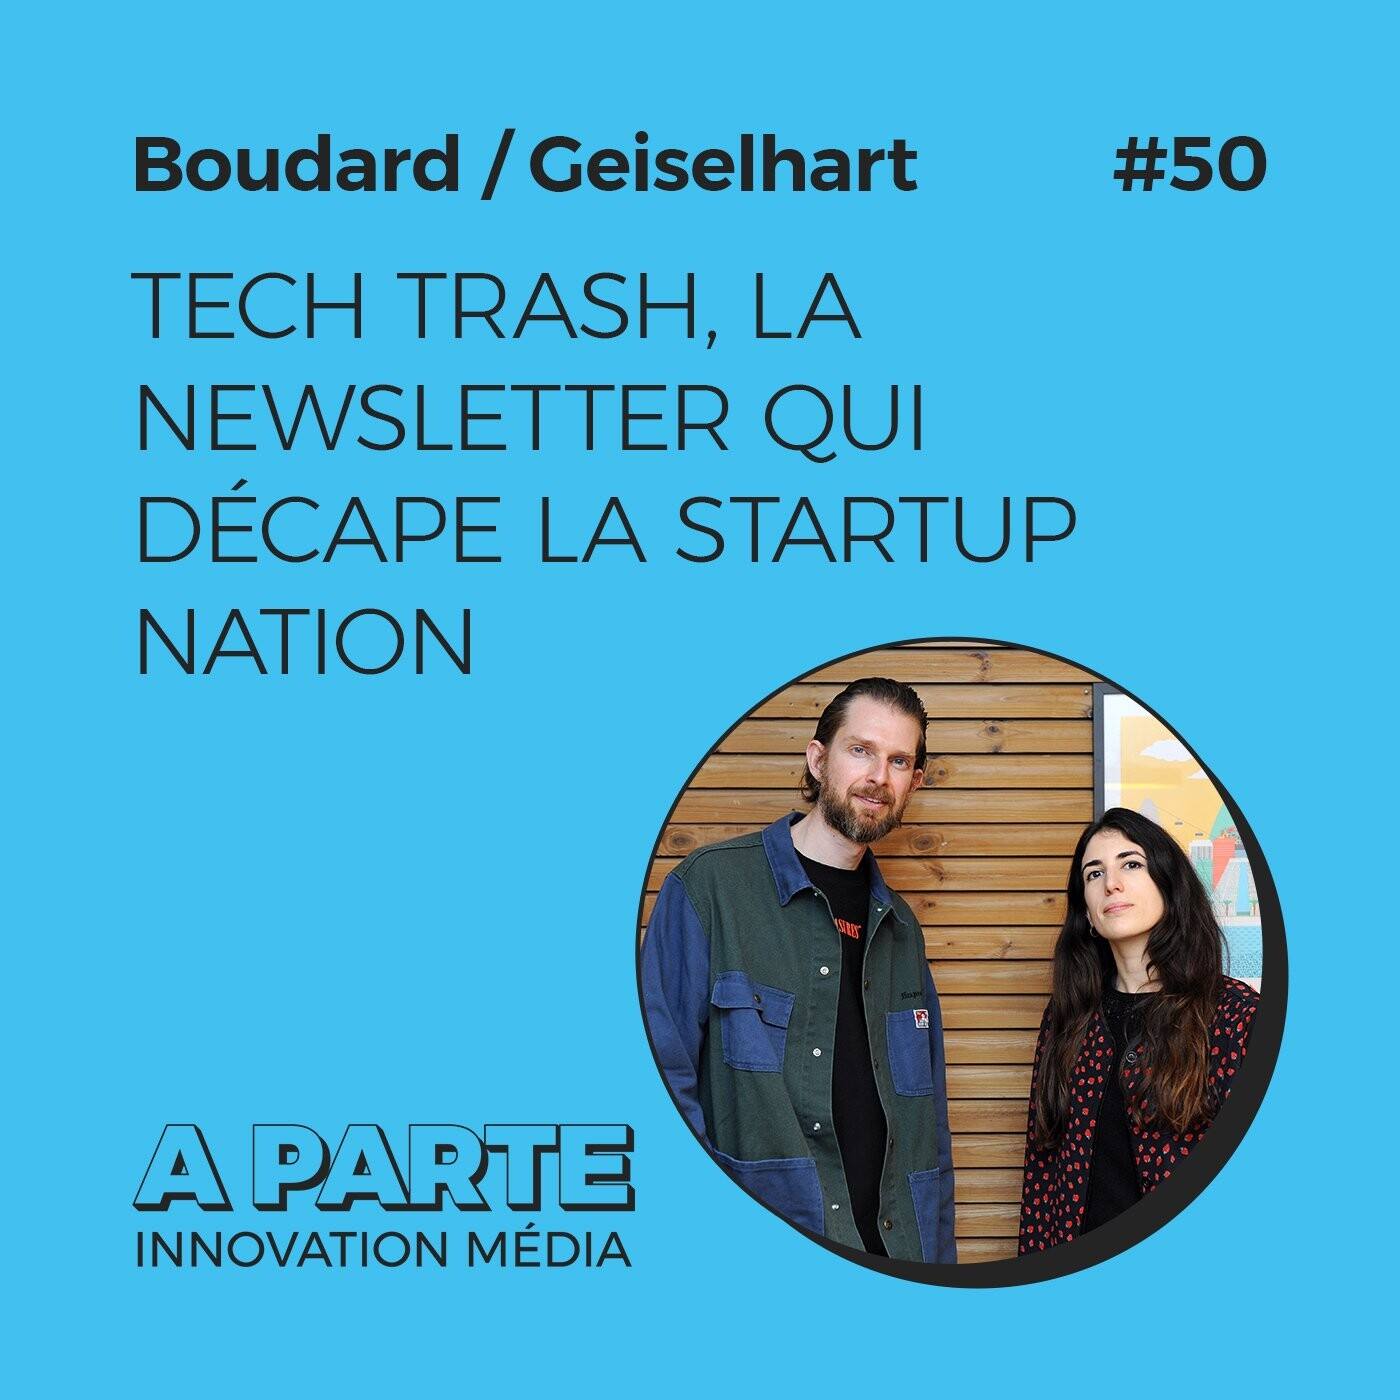 Tech Trash, la newsletter qui décape la startup nation, avec Lauren Boudard et Dan Geiselhart